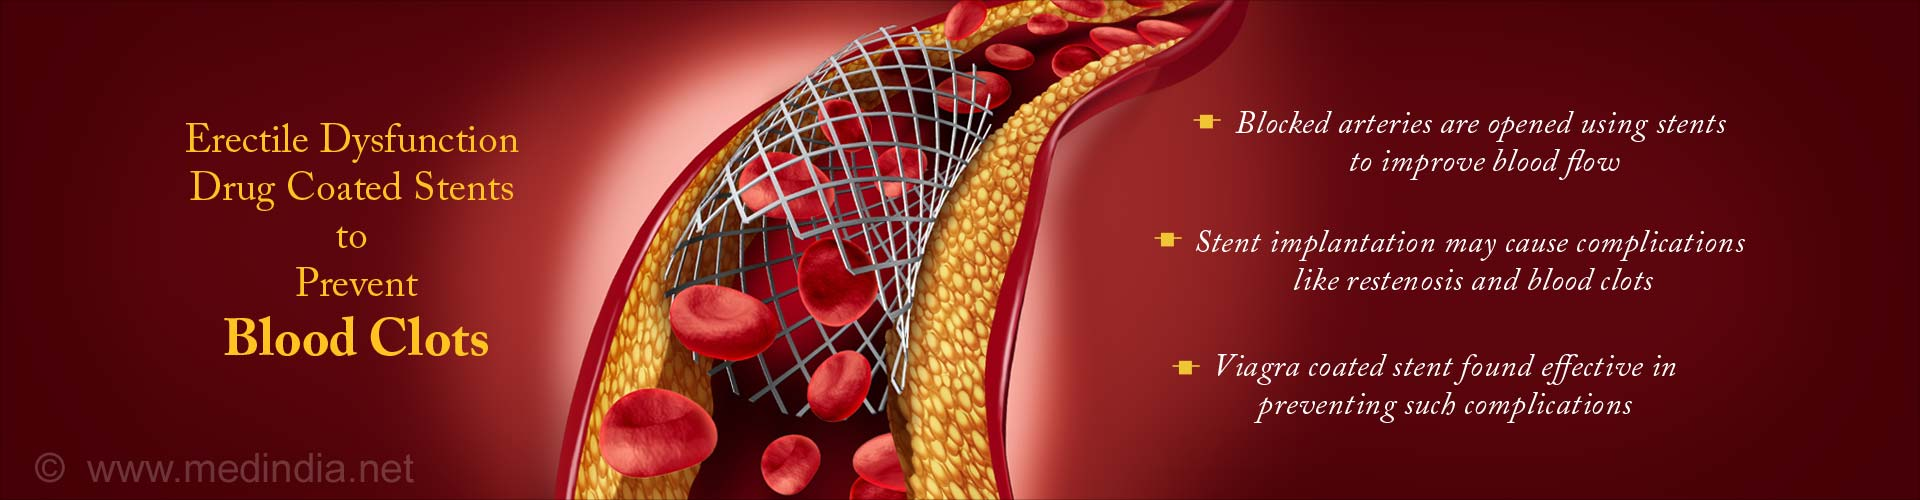 Viagra Coated Stent Reduces Blood Clots